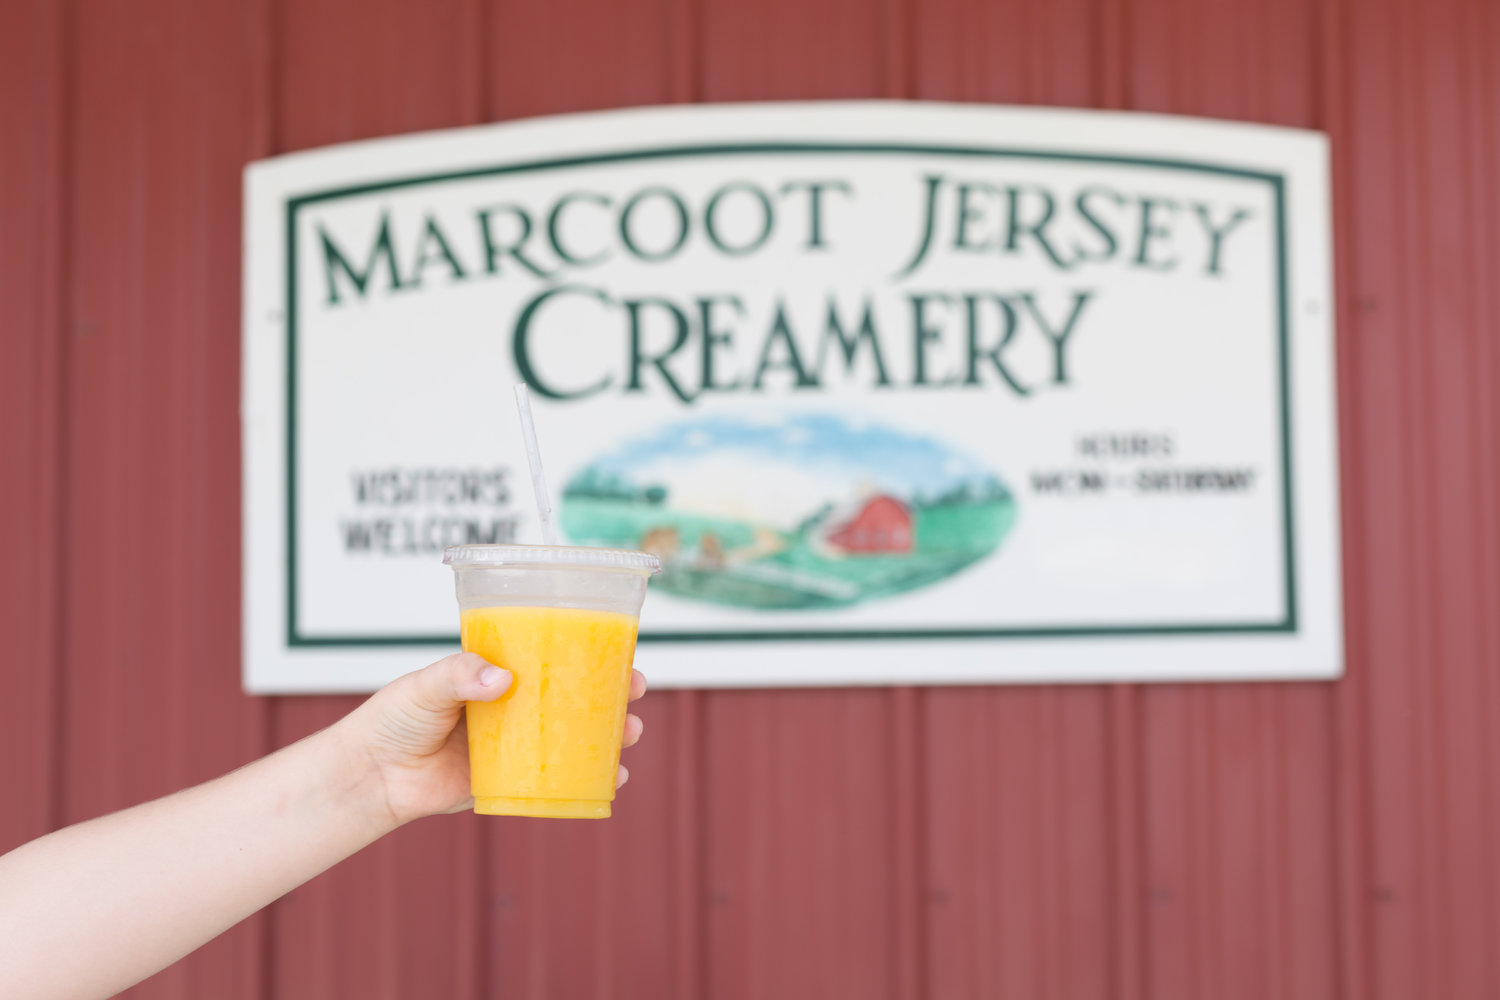 Marcoot Jersey Creamery's CHEESEFEST 2020